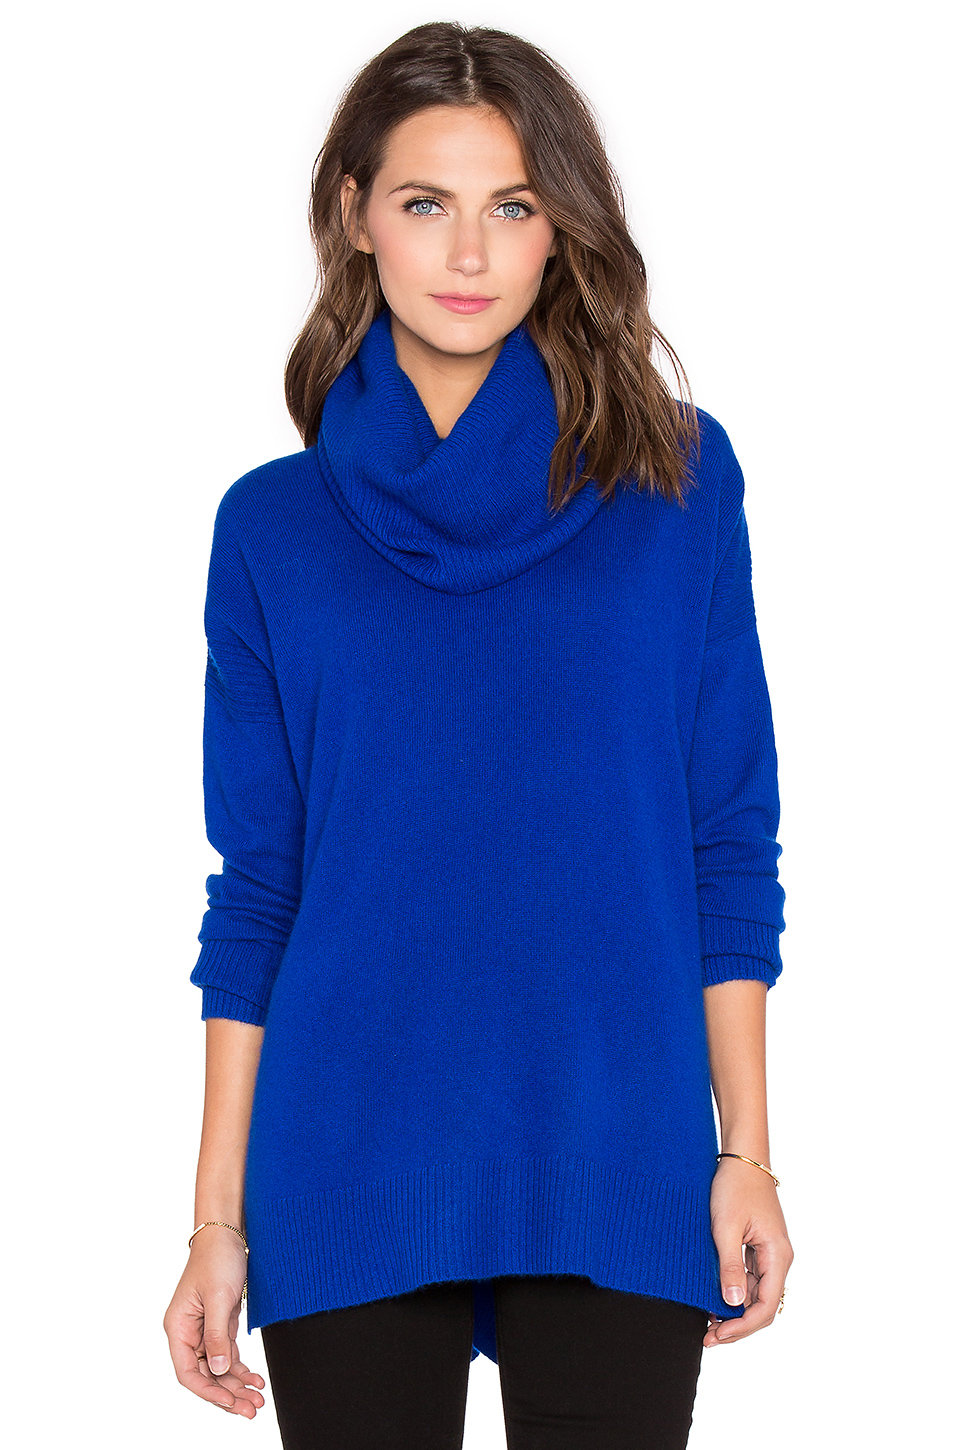 Diane von furstenberg Ahiga Slim 2 Cashmere Turtleneck Sweater in ...